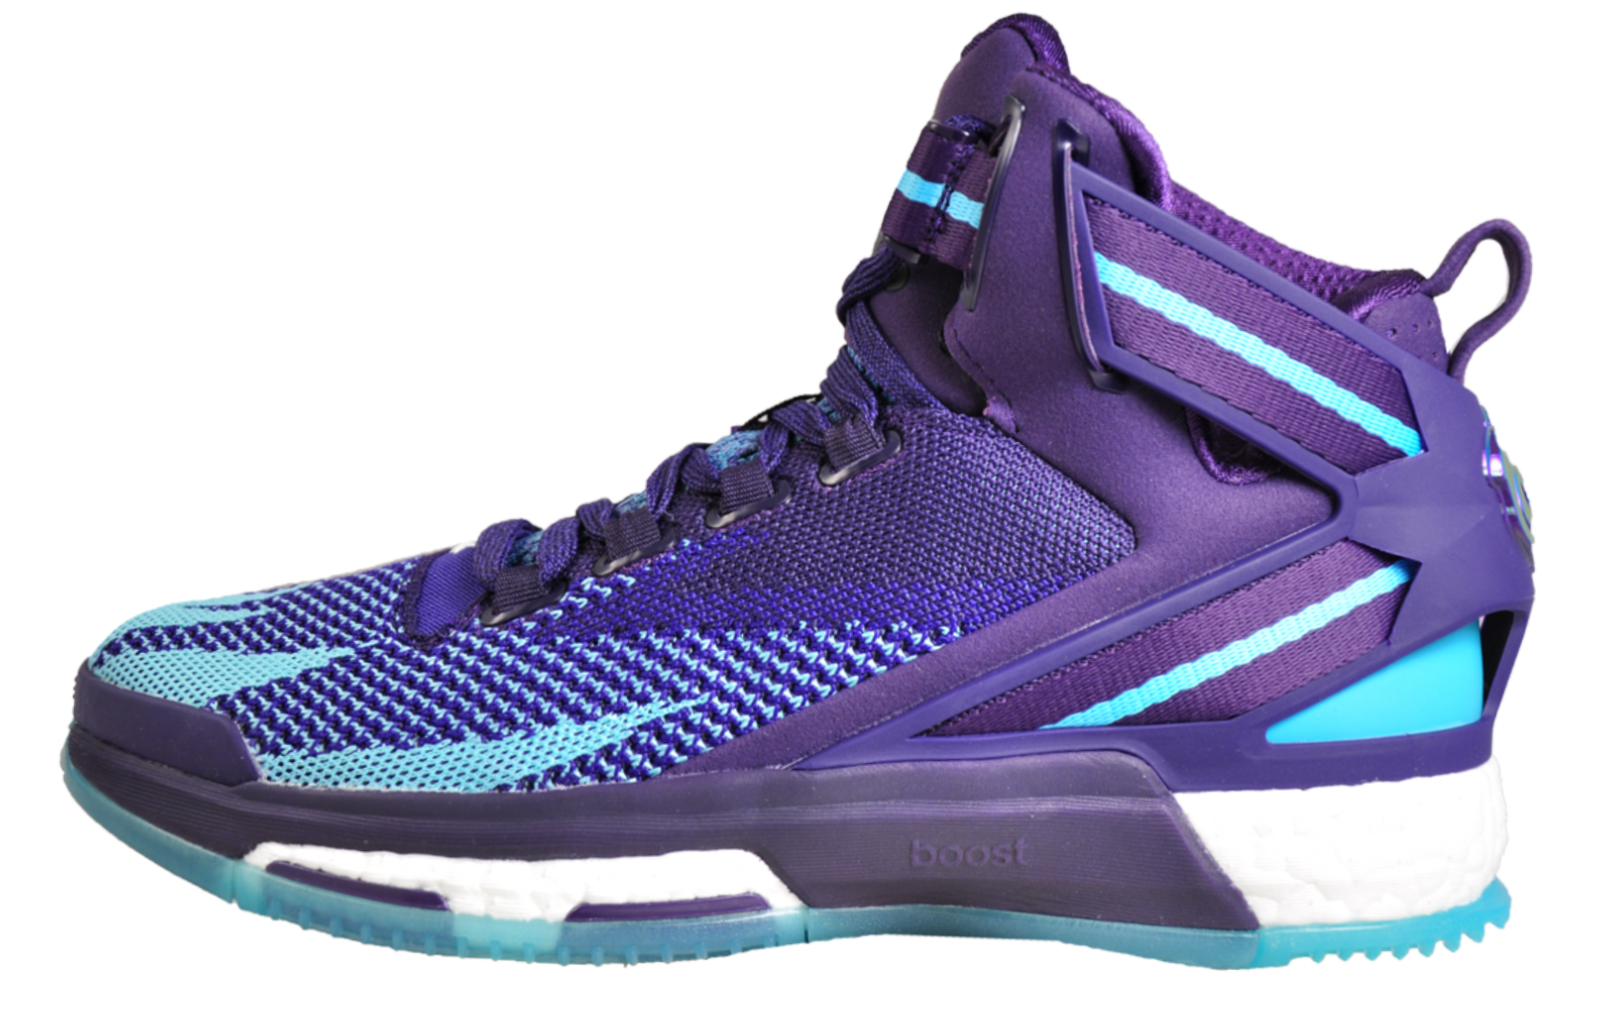 buy online 2dc99 ab11a Adidas D Rose 6 Boost Primeknit Mens Basketball Boots Shoes Fitness Gym  Court Trainers